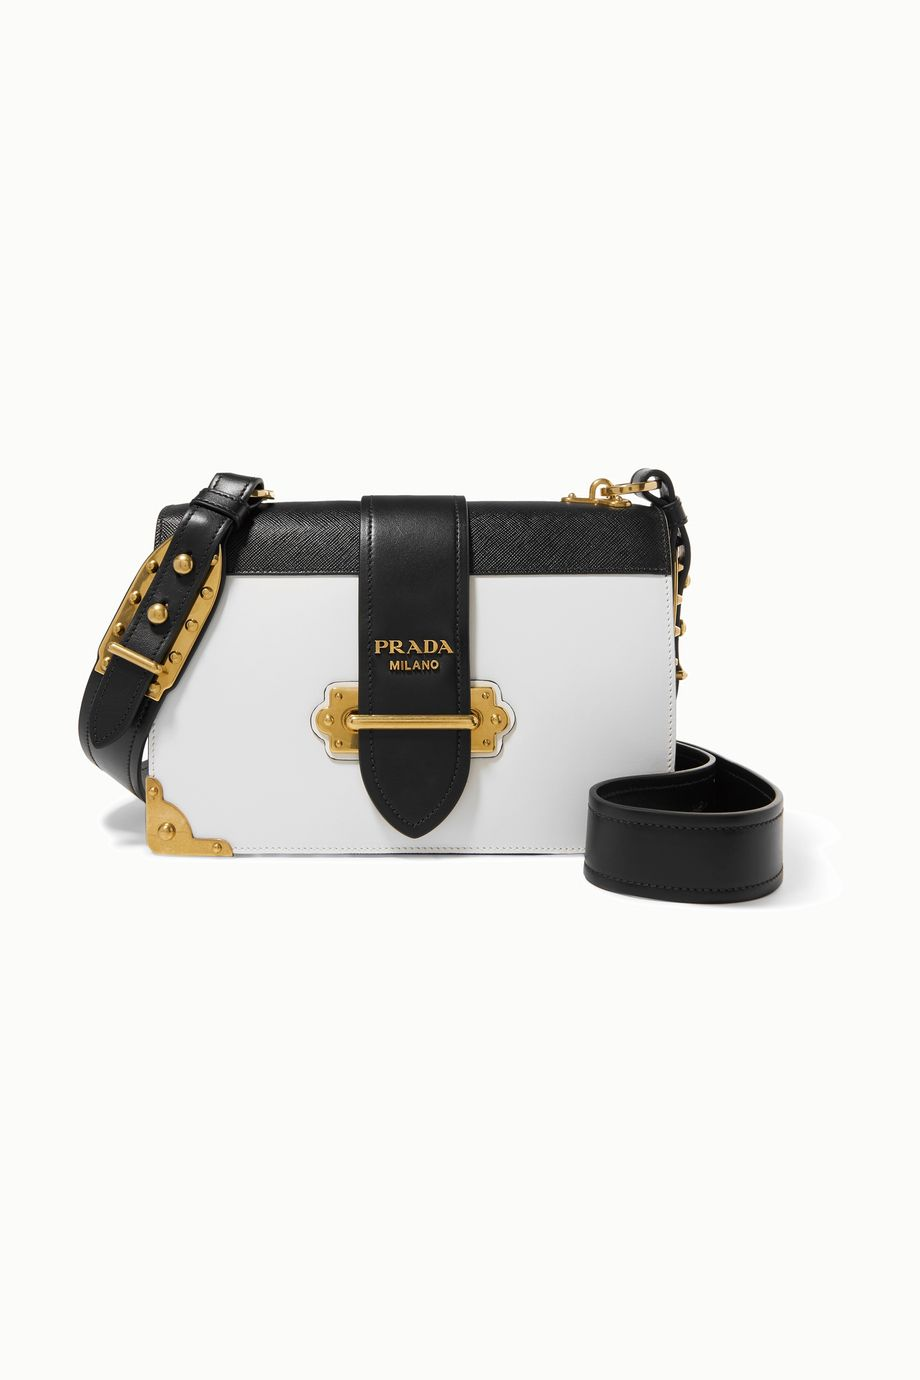 Prada Cahier large two-tone leather shoulder bag